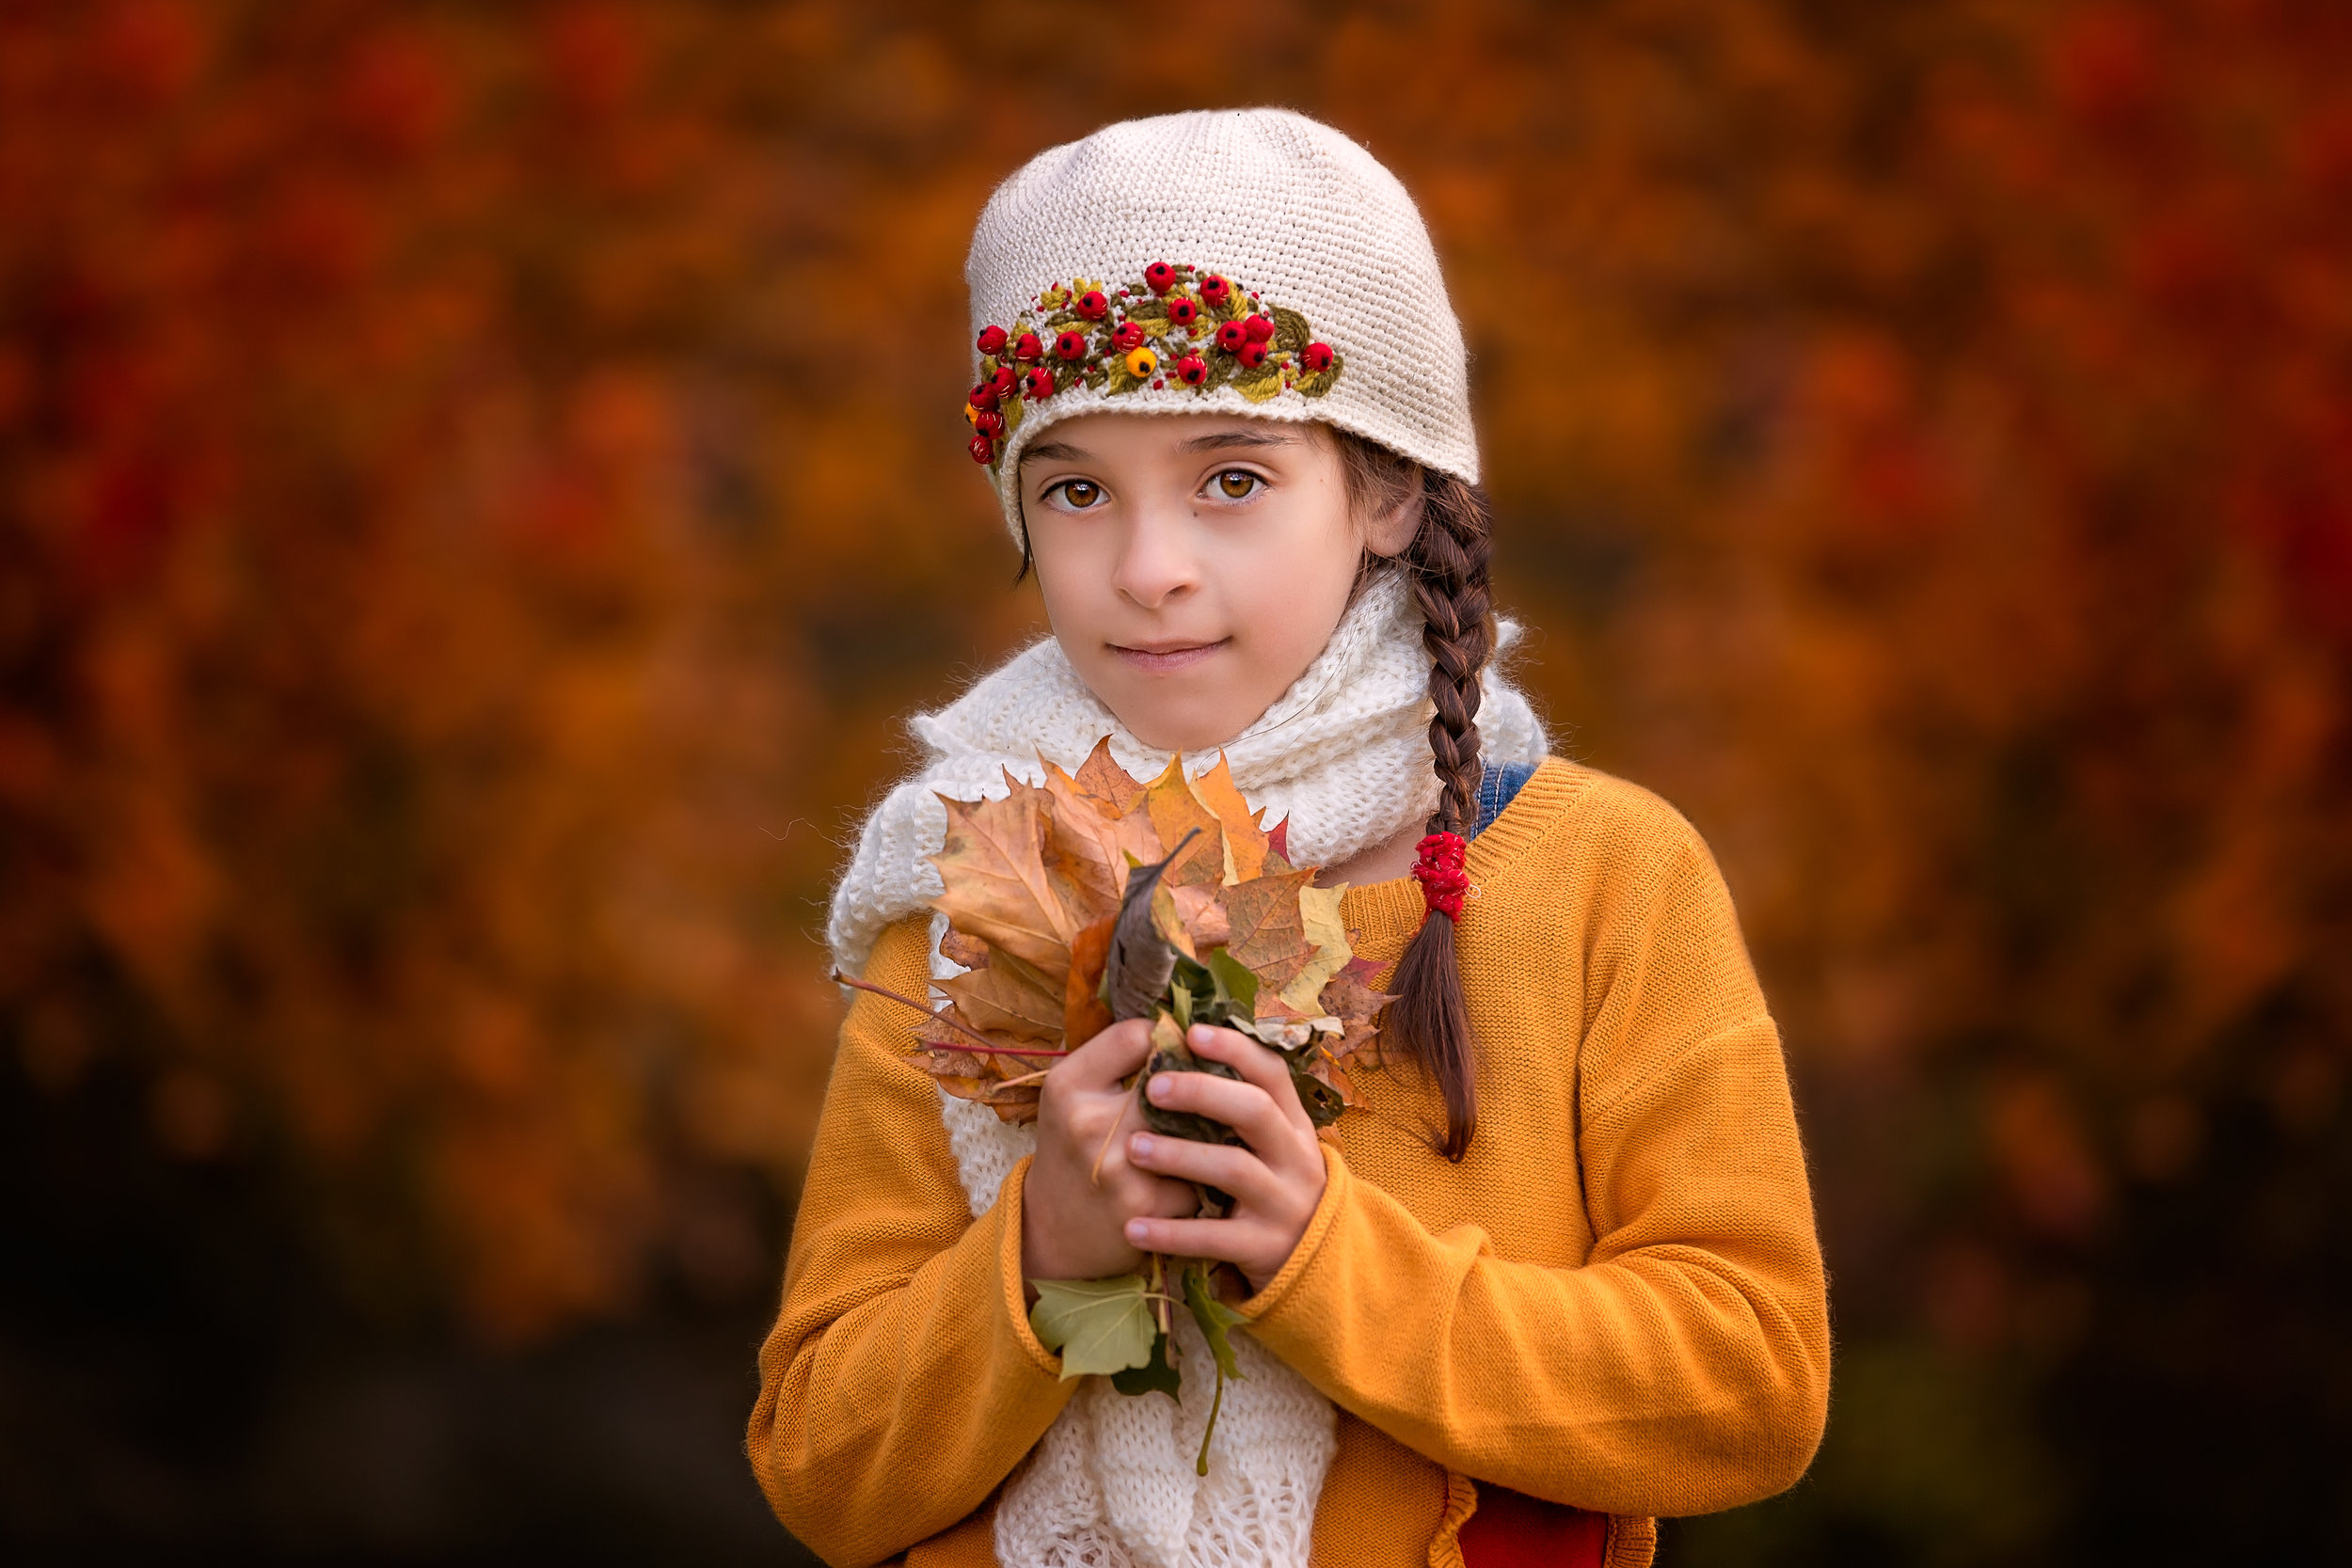 Child photography Leeds, York, Bradford, Harrogate: girl in a yellow sweater holding autumn leaves. Child autumn session in Leeds, Yorkshire